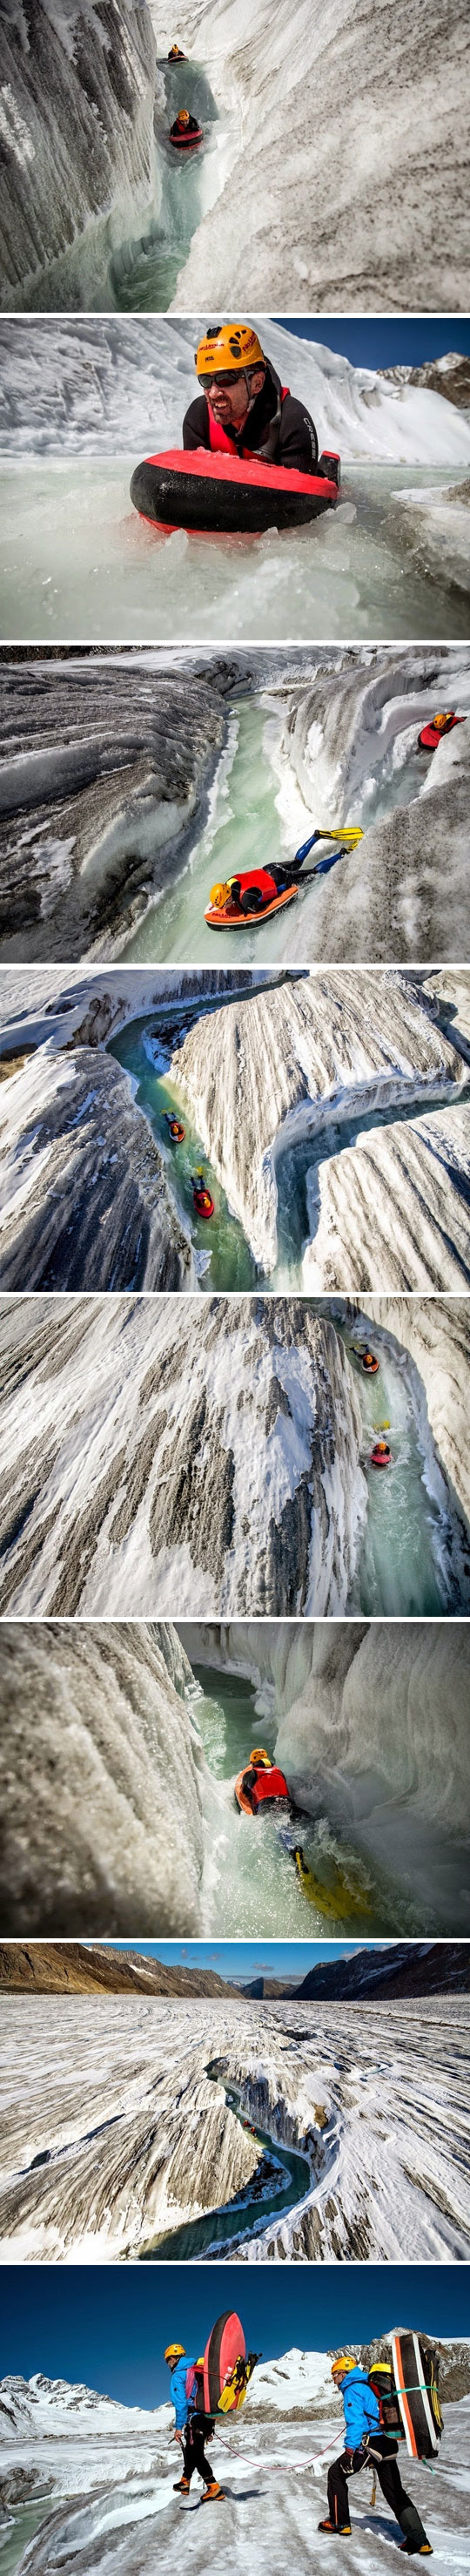 glacier-water-slide-fun